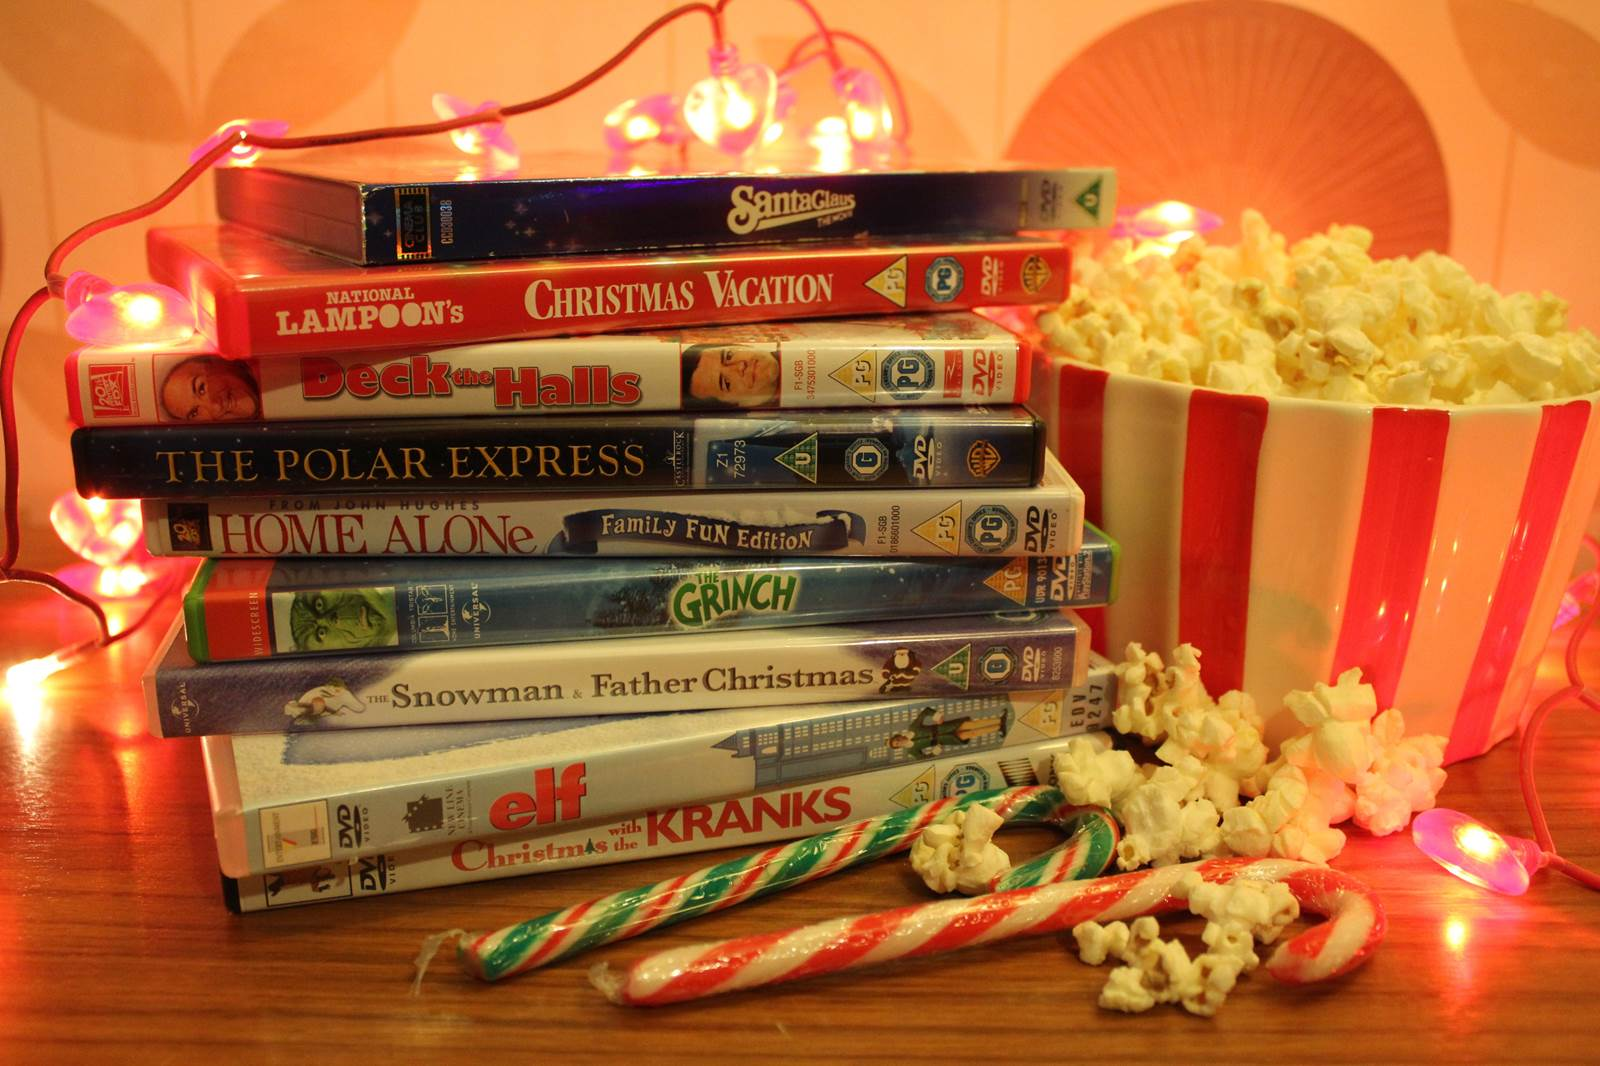 635838030577244143-701721226_festive-activity-christmas-film-movie-marathon-with-popcorn-and-candy-canes